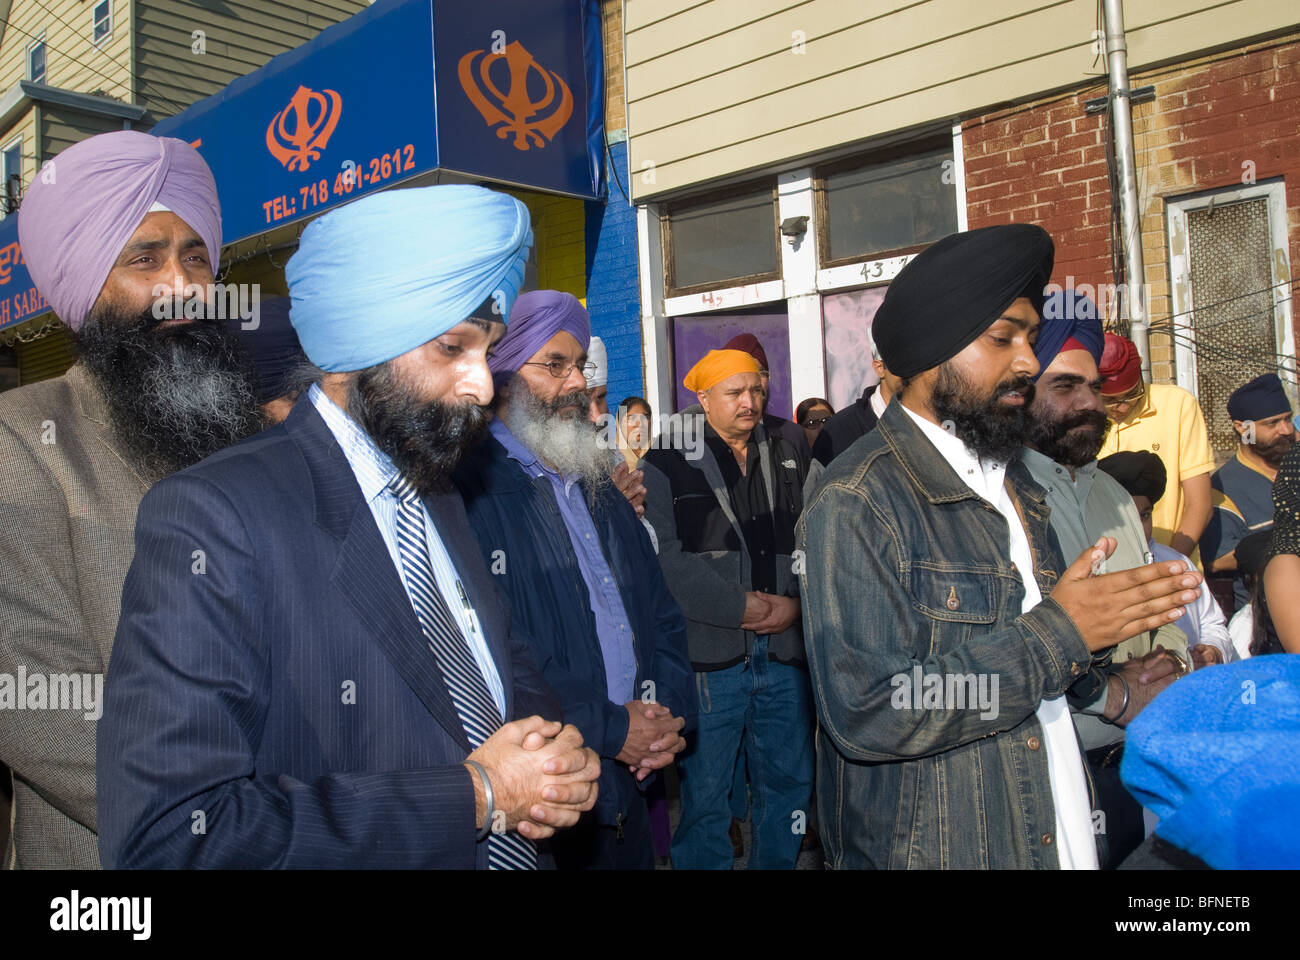 Members the Singh Sabha of New York conduct a prayer with members of other religious congregations in Flushing, - Stock Image